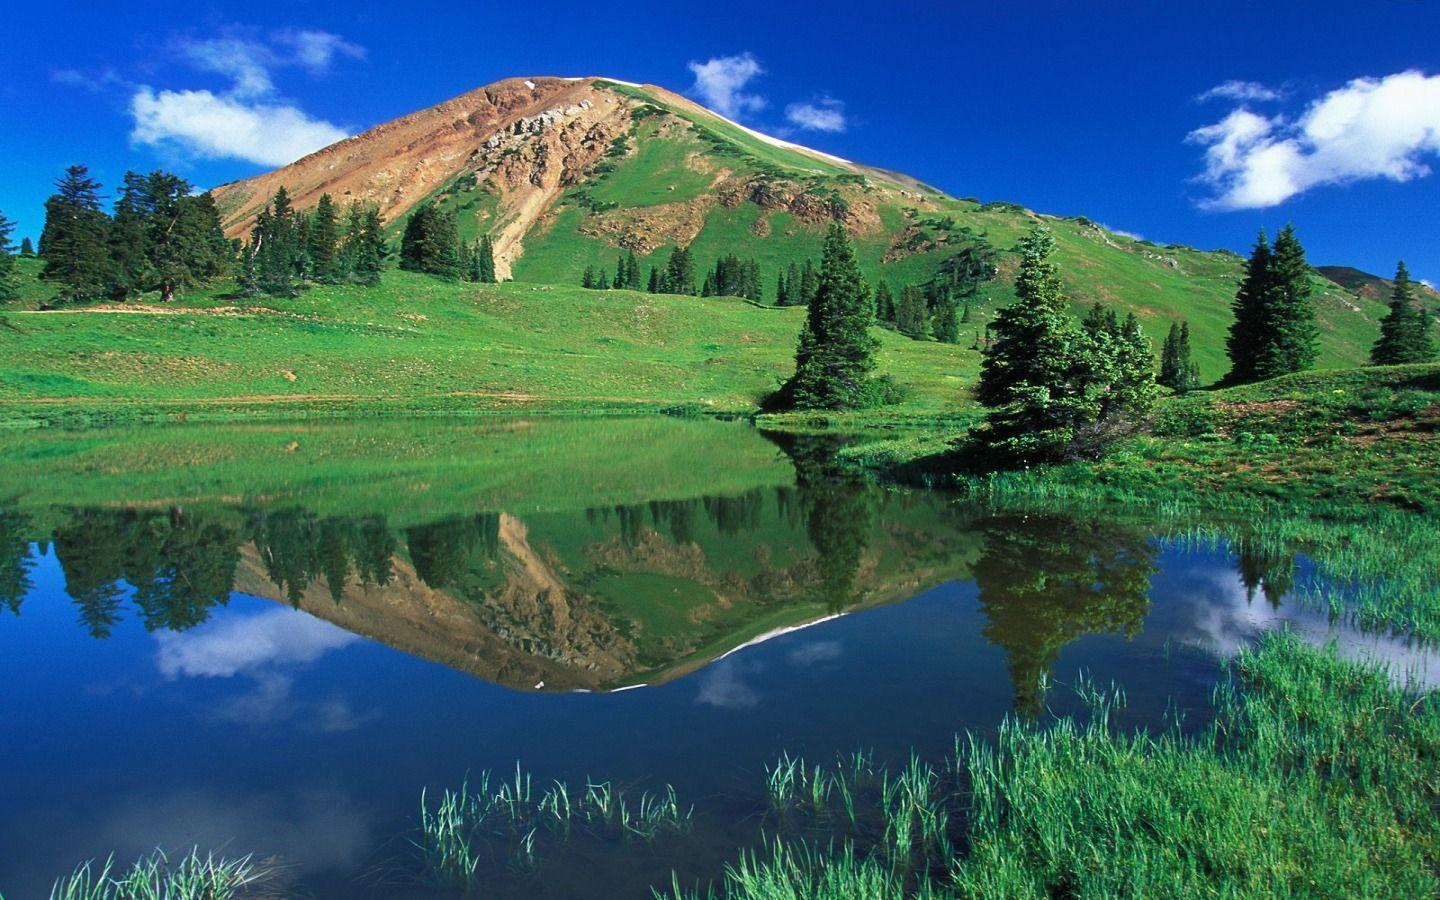 Colorado Wallpapers Image for Desktop Backgrounds Nature Mountain